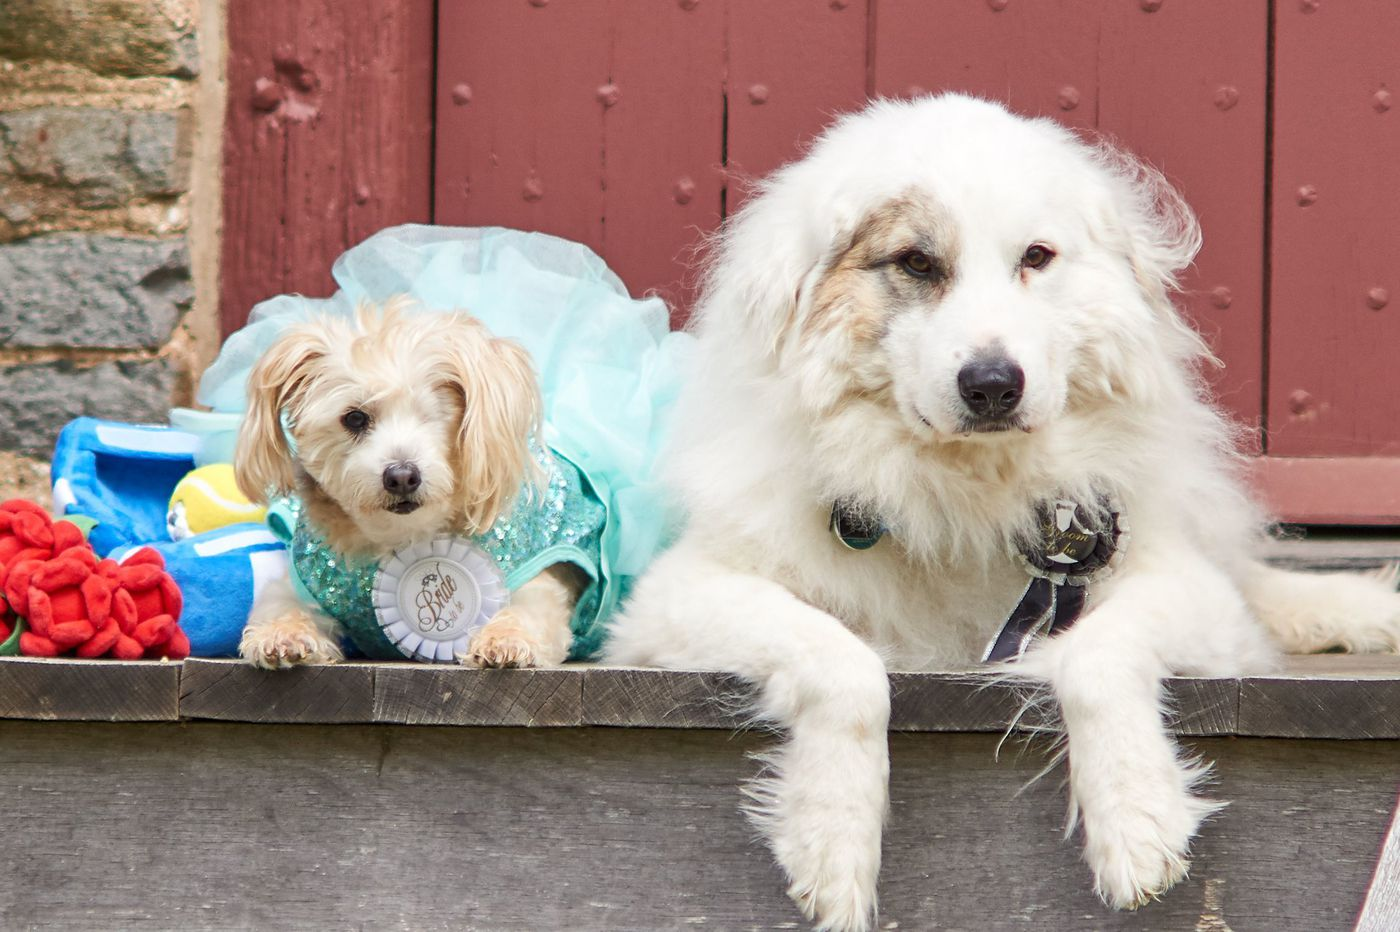 You can go to a dog wedding this weekend in Media. Here's how to plan your own.